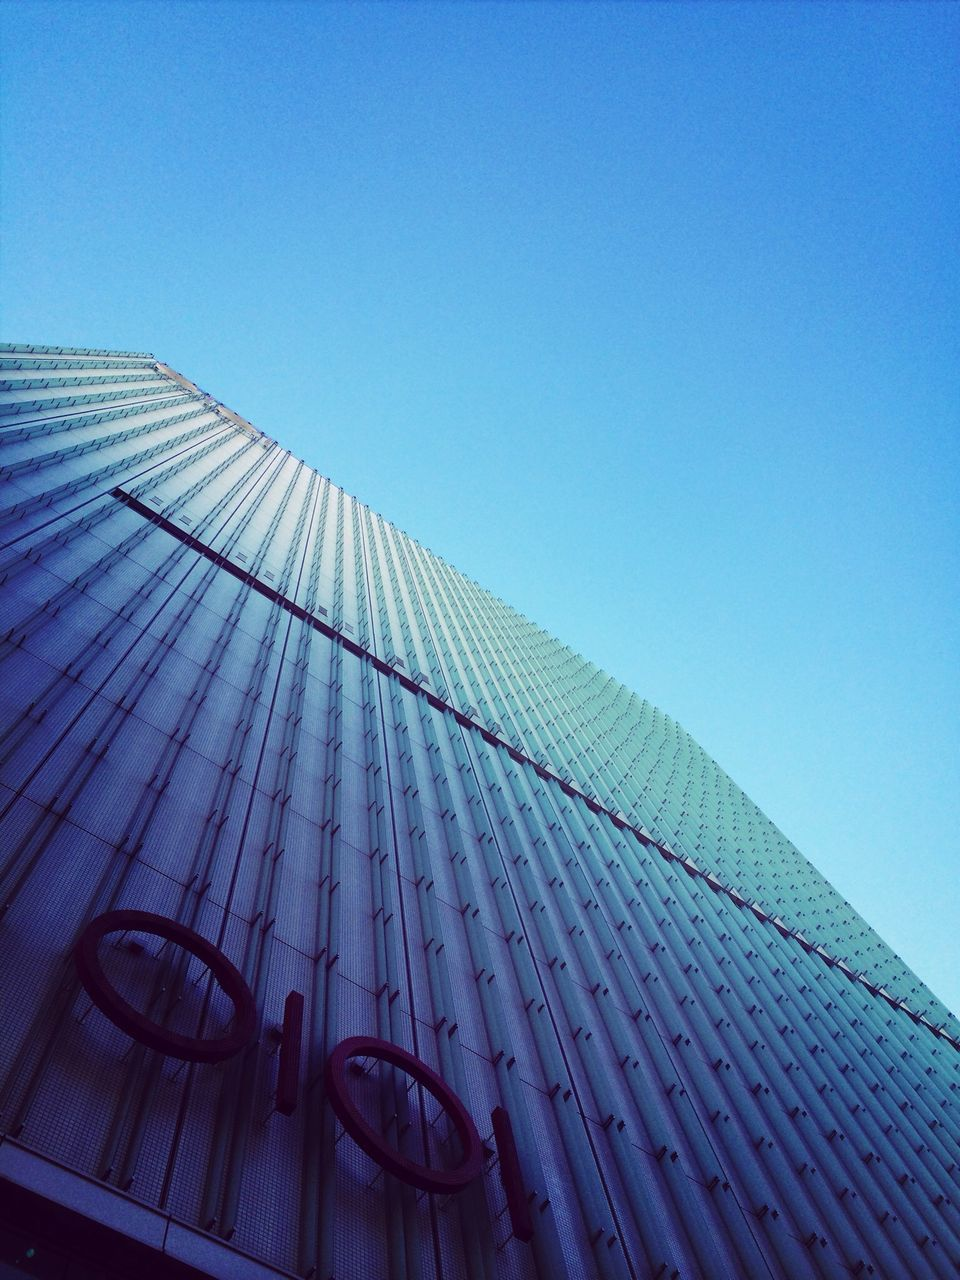 architecture, low angle view, built structure, building exterior, modern, growth, no people, day, skyscraper, blue, clear sky, city, outdoors, sky